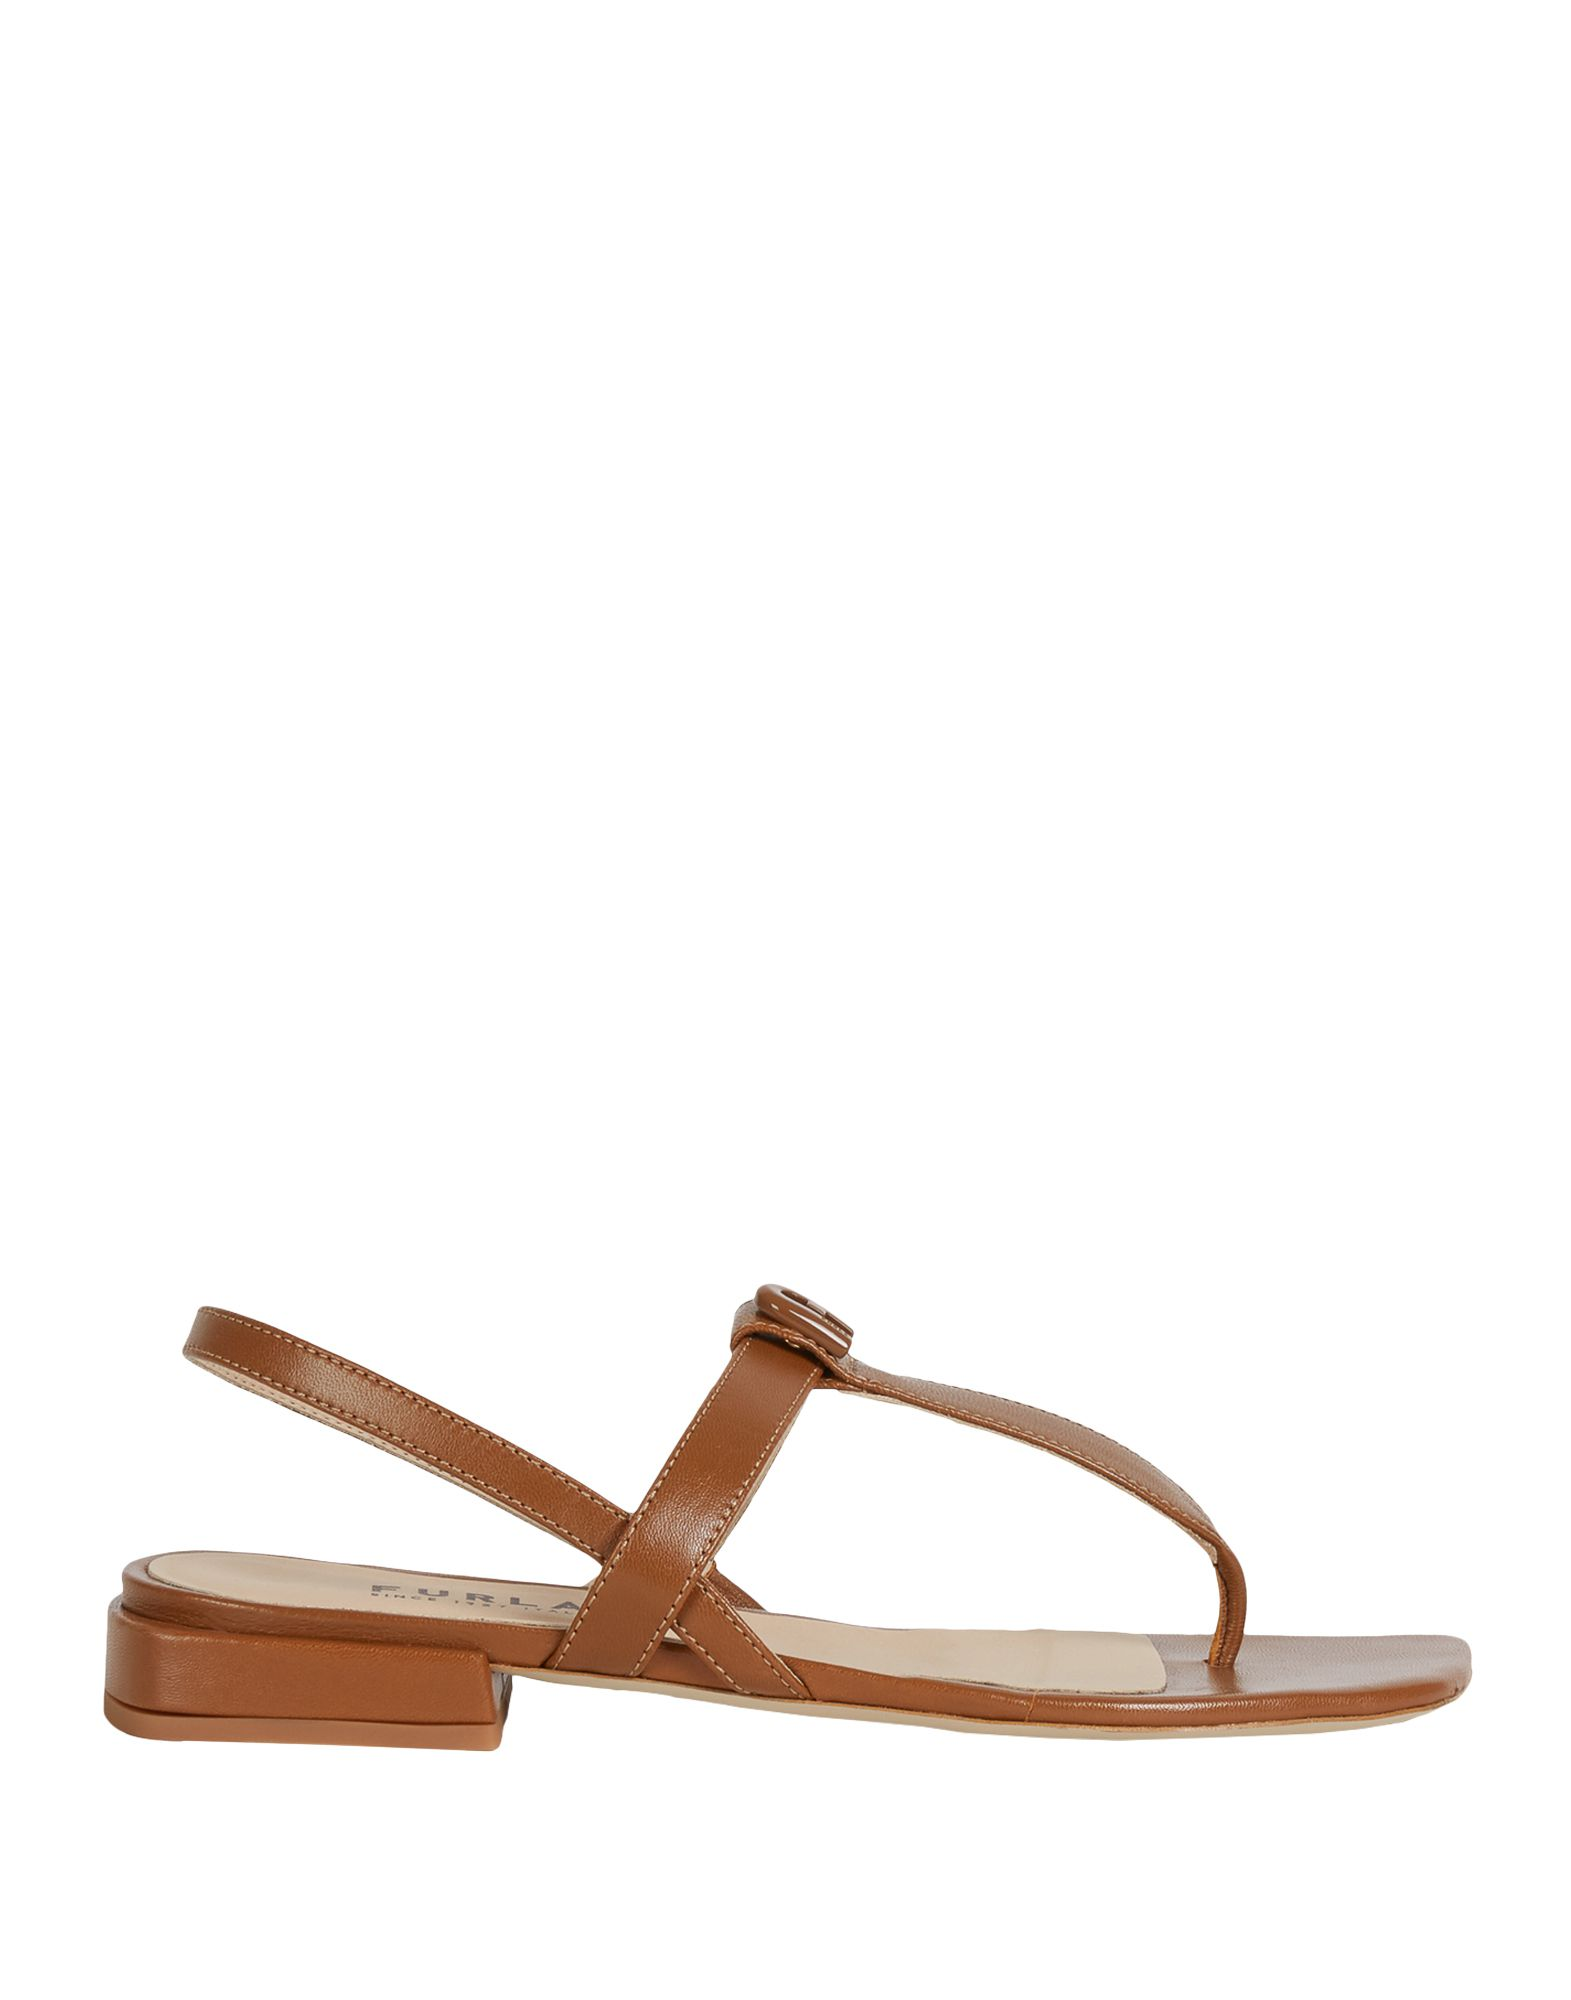 FURLA Toe strap sandals. logo, solid color, elasticized gores, square toeline, square heel, leather lining, rubber sole, contains non-textile parts of animal origin. 100% Soft Leather